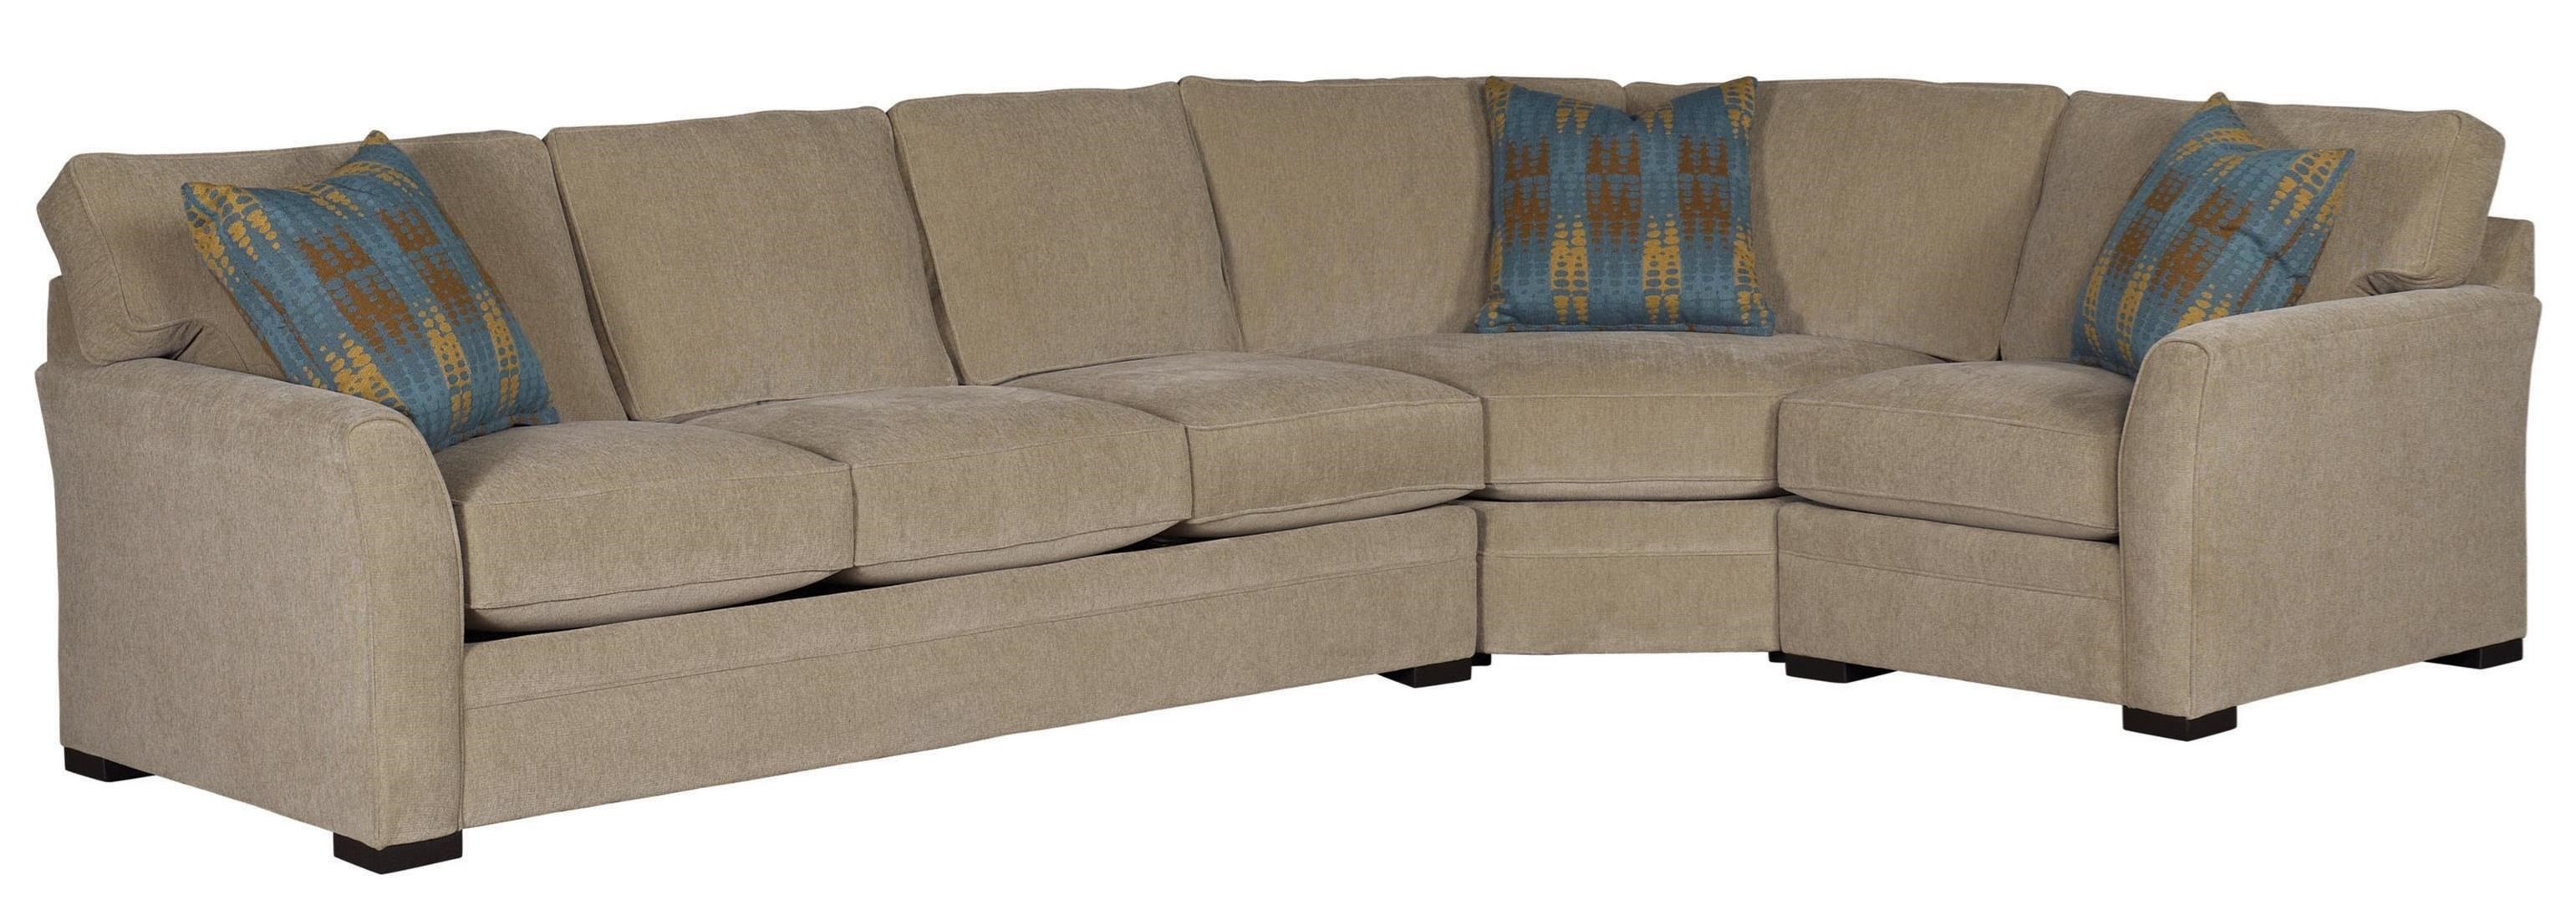 Charmant Jonathan Louis Scorpio Casual Sectional Sofa With Flared Arms